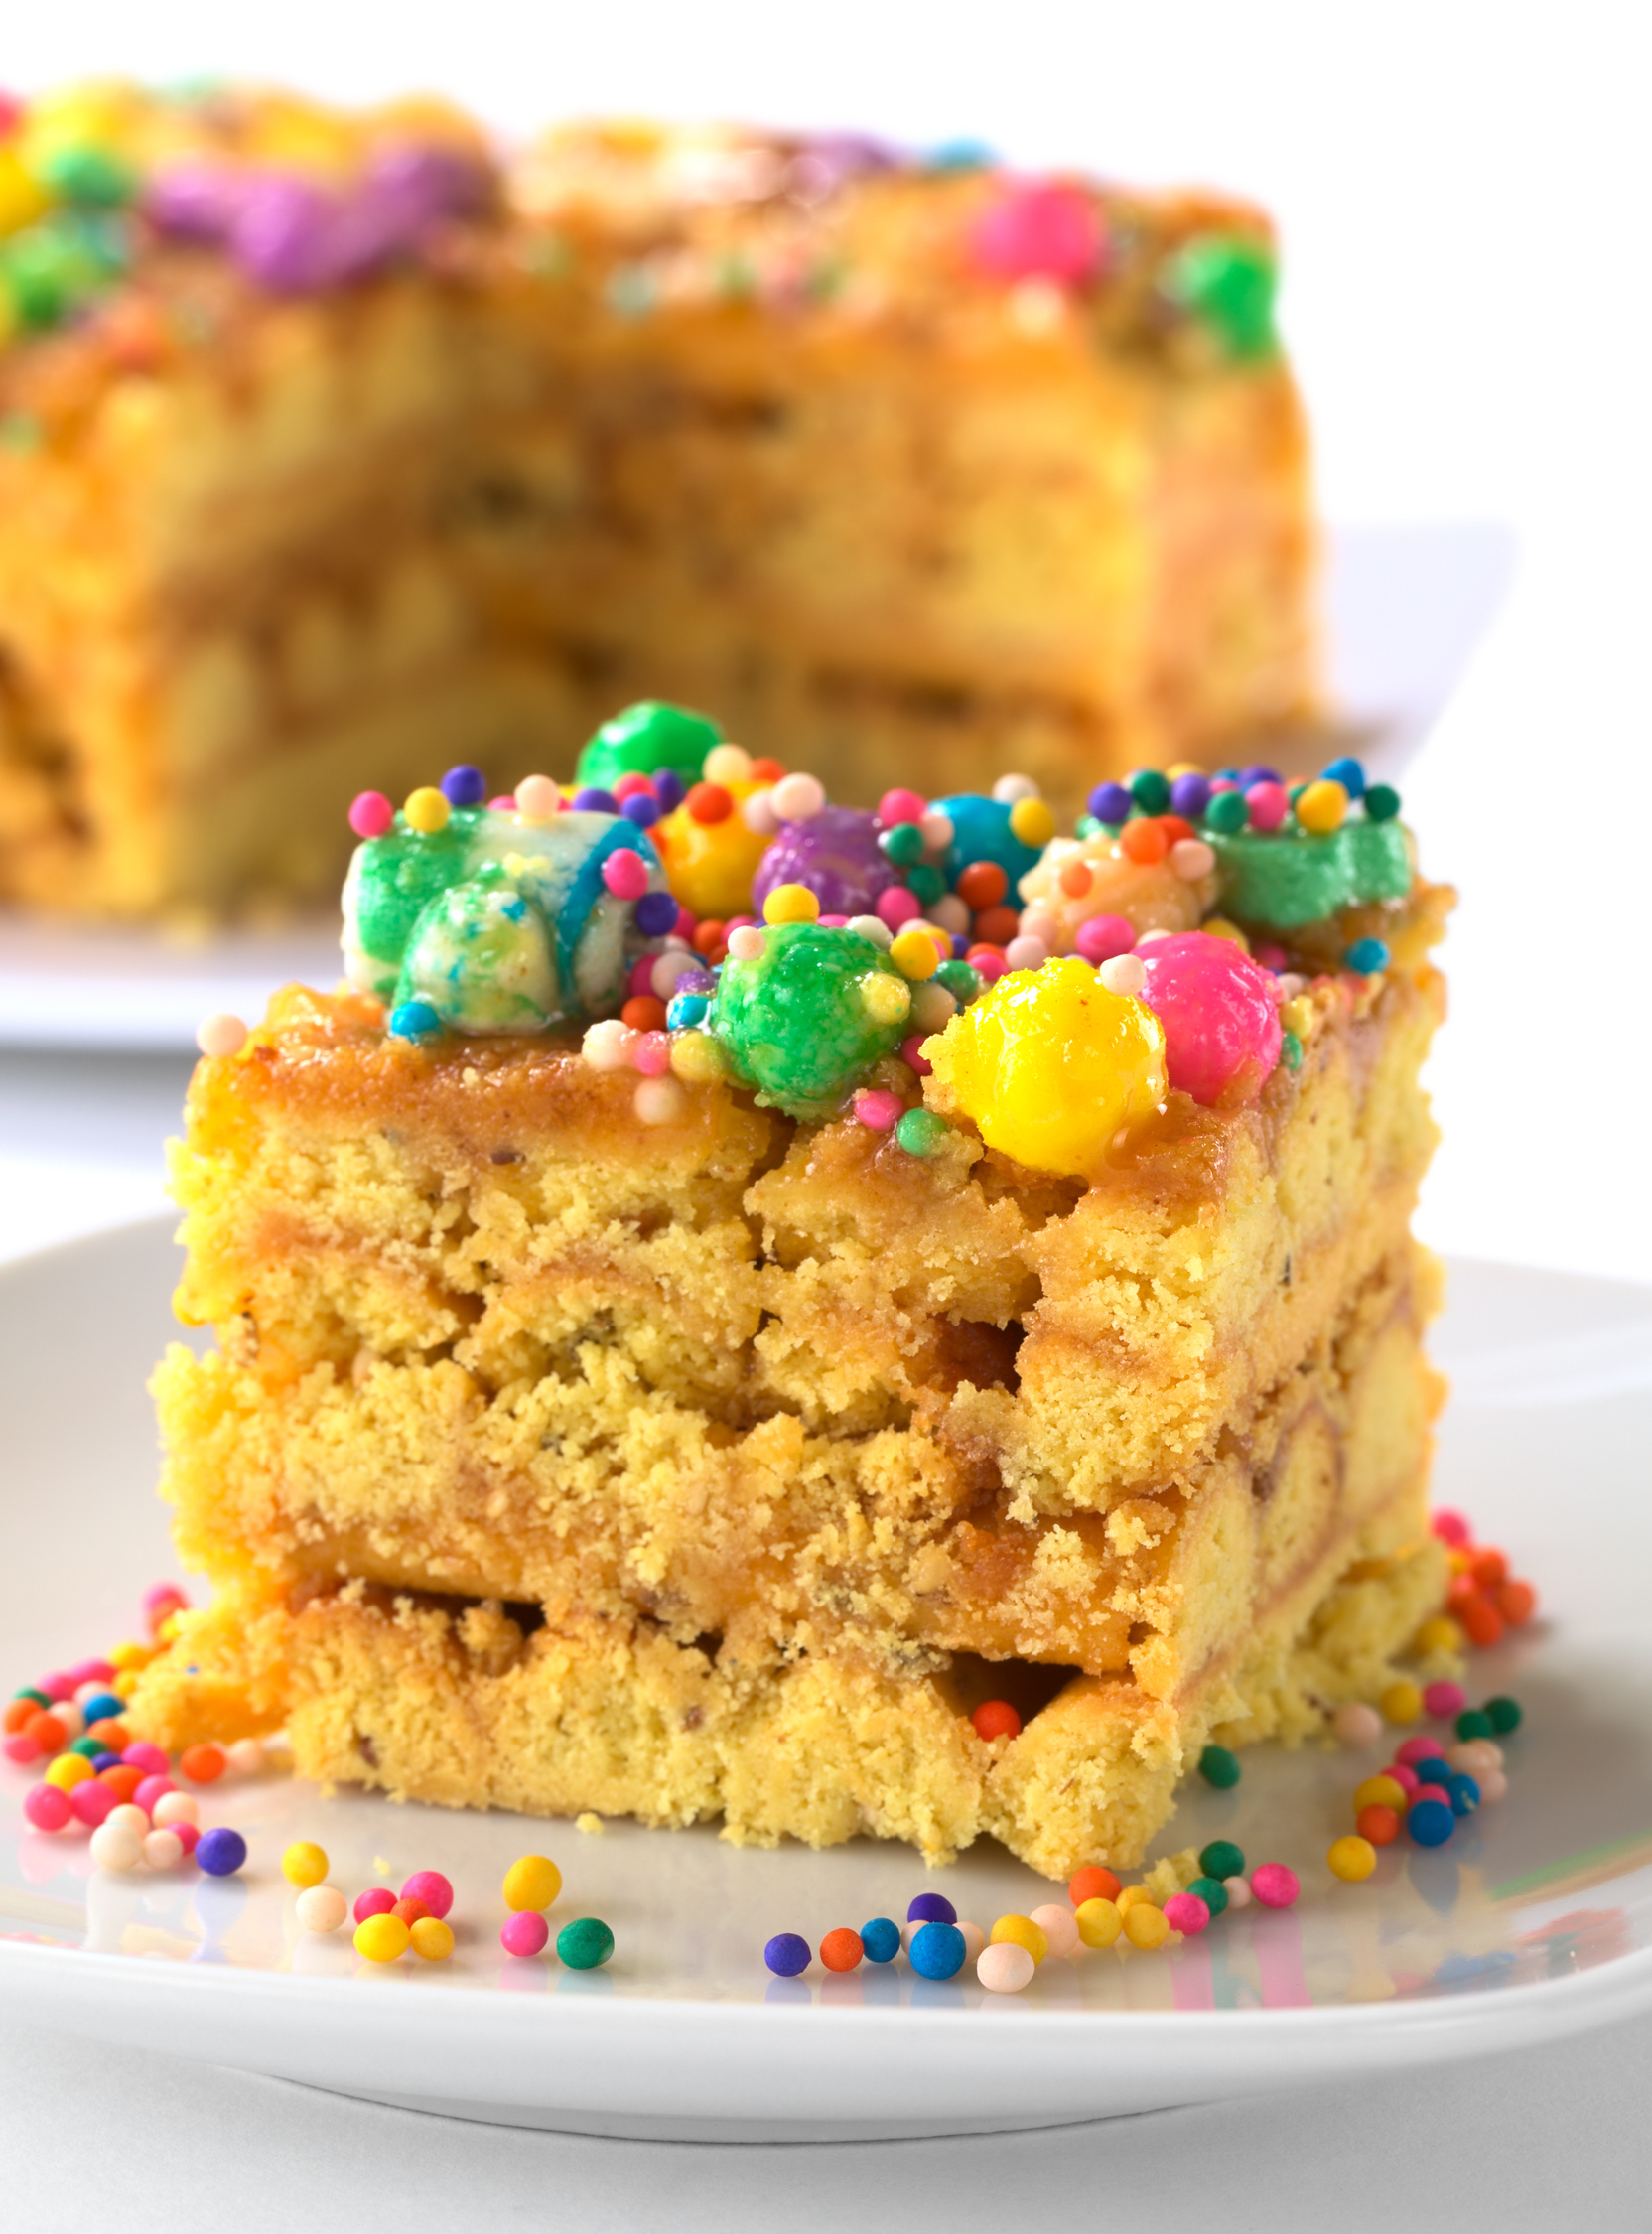 In Peru, a colorful cake called Turron flavored with anis sesame dried fruits and honey and garnished with colorful sweets on top